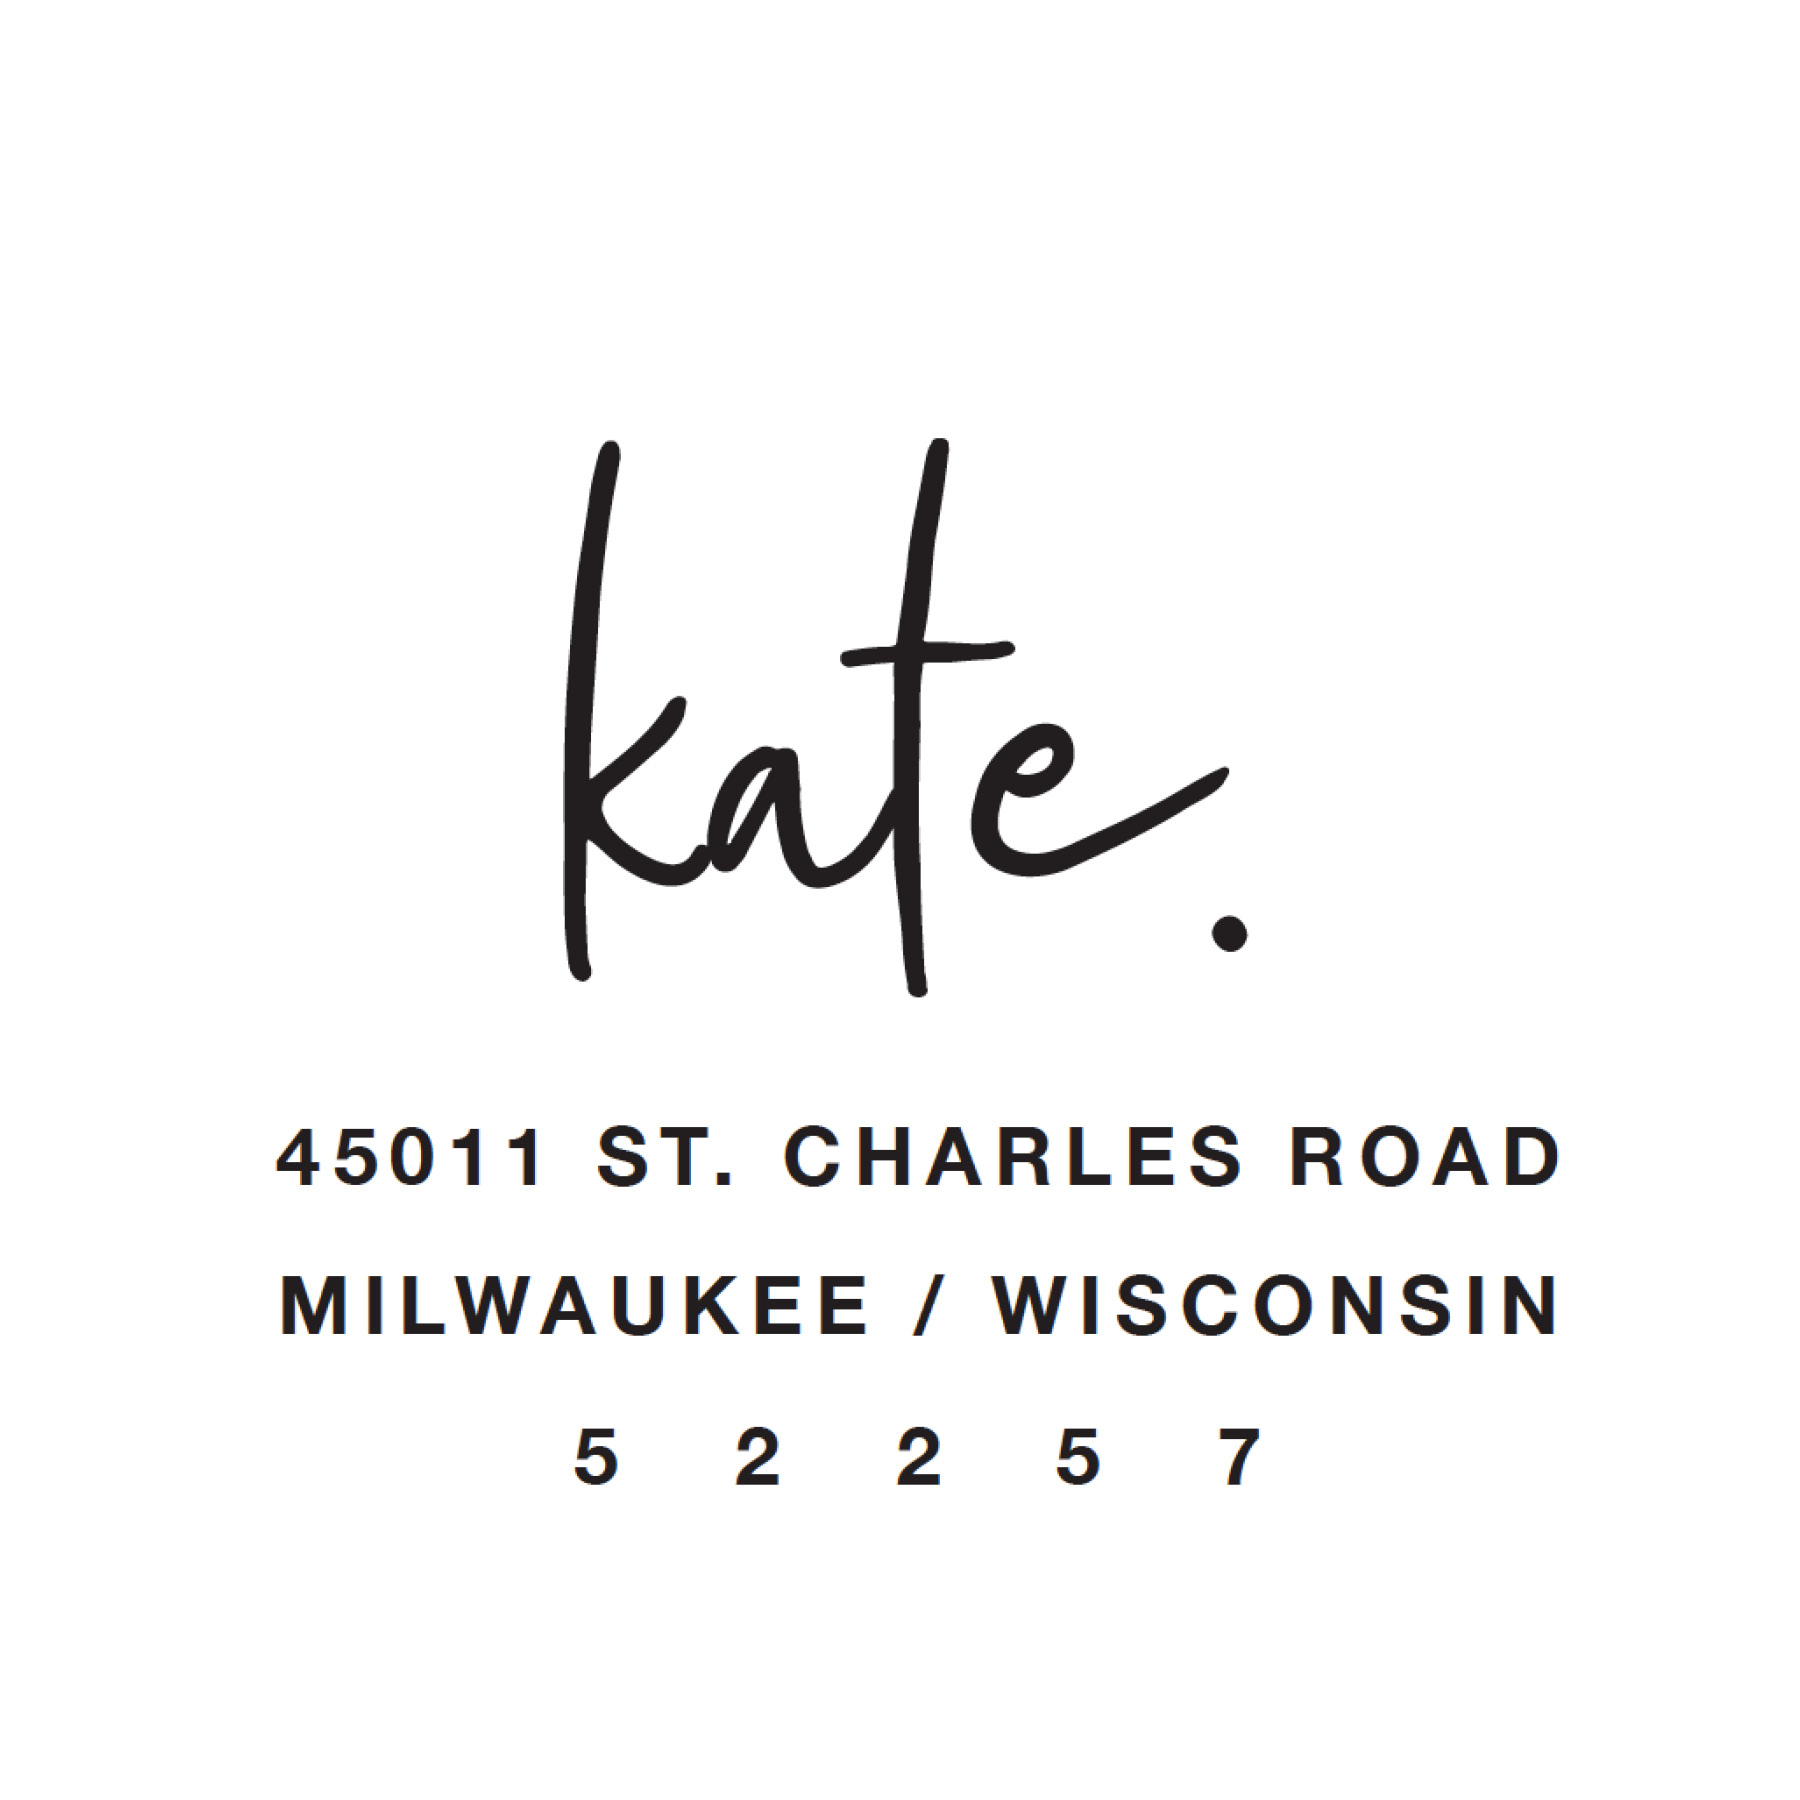 STAMP NAME: KATE.